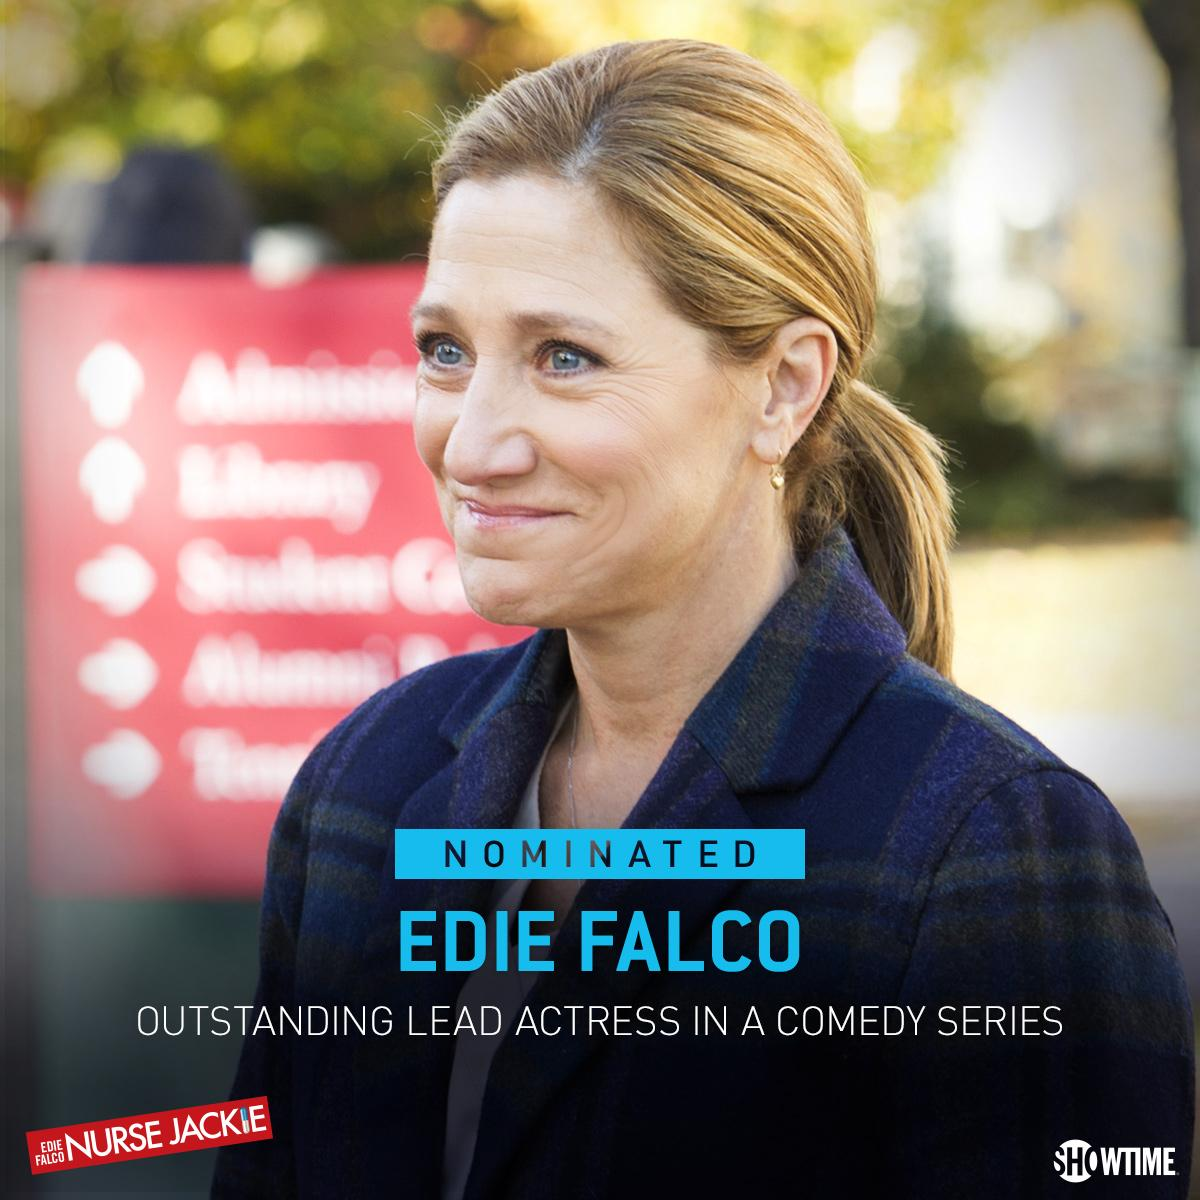 Congrats to Edie Falco!! She is now tied for the most Lead Actress nominations in the history of #Emmys! #NurseJackie http://t.co/VsVIGZFFmk